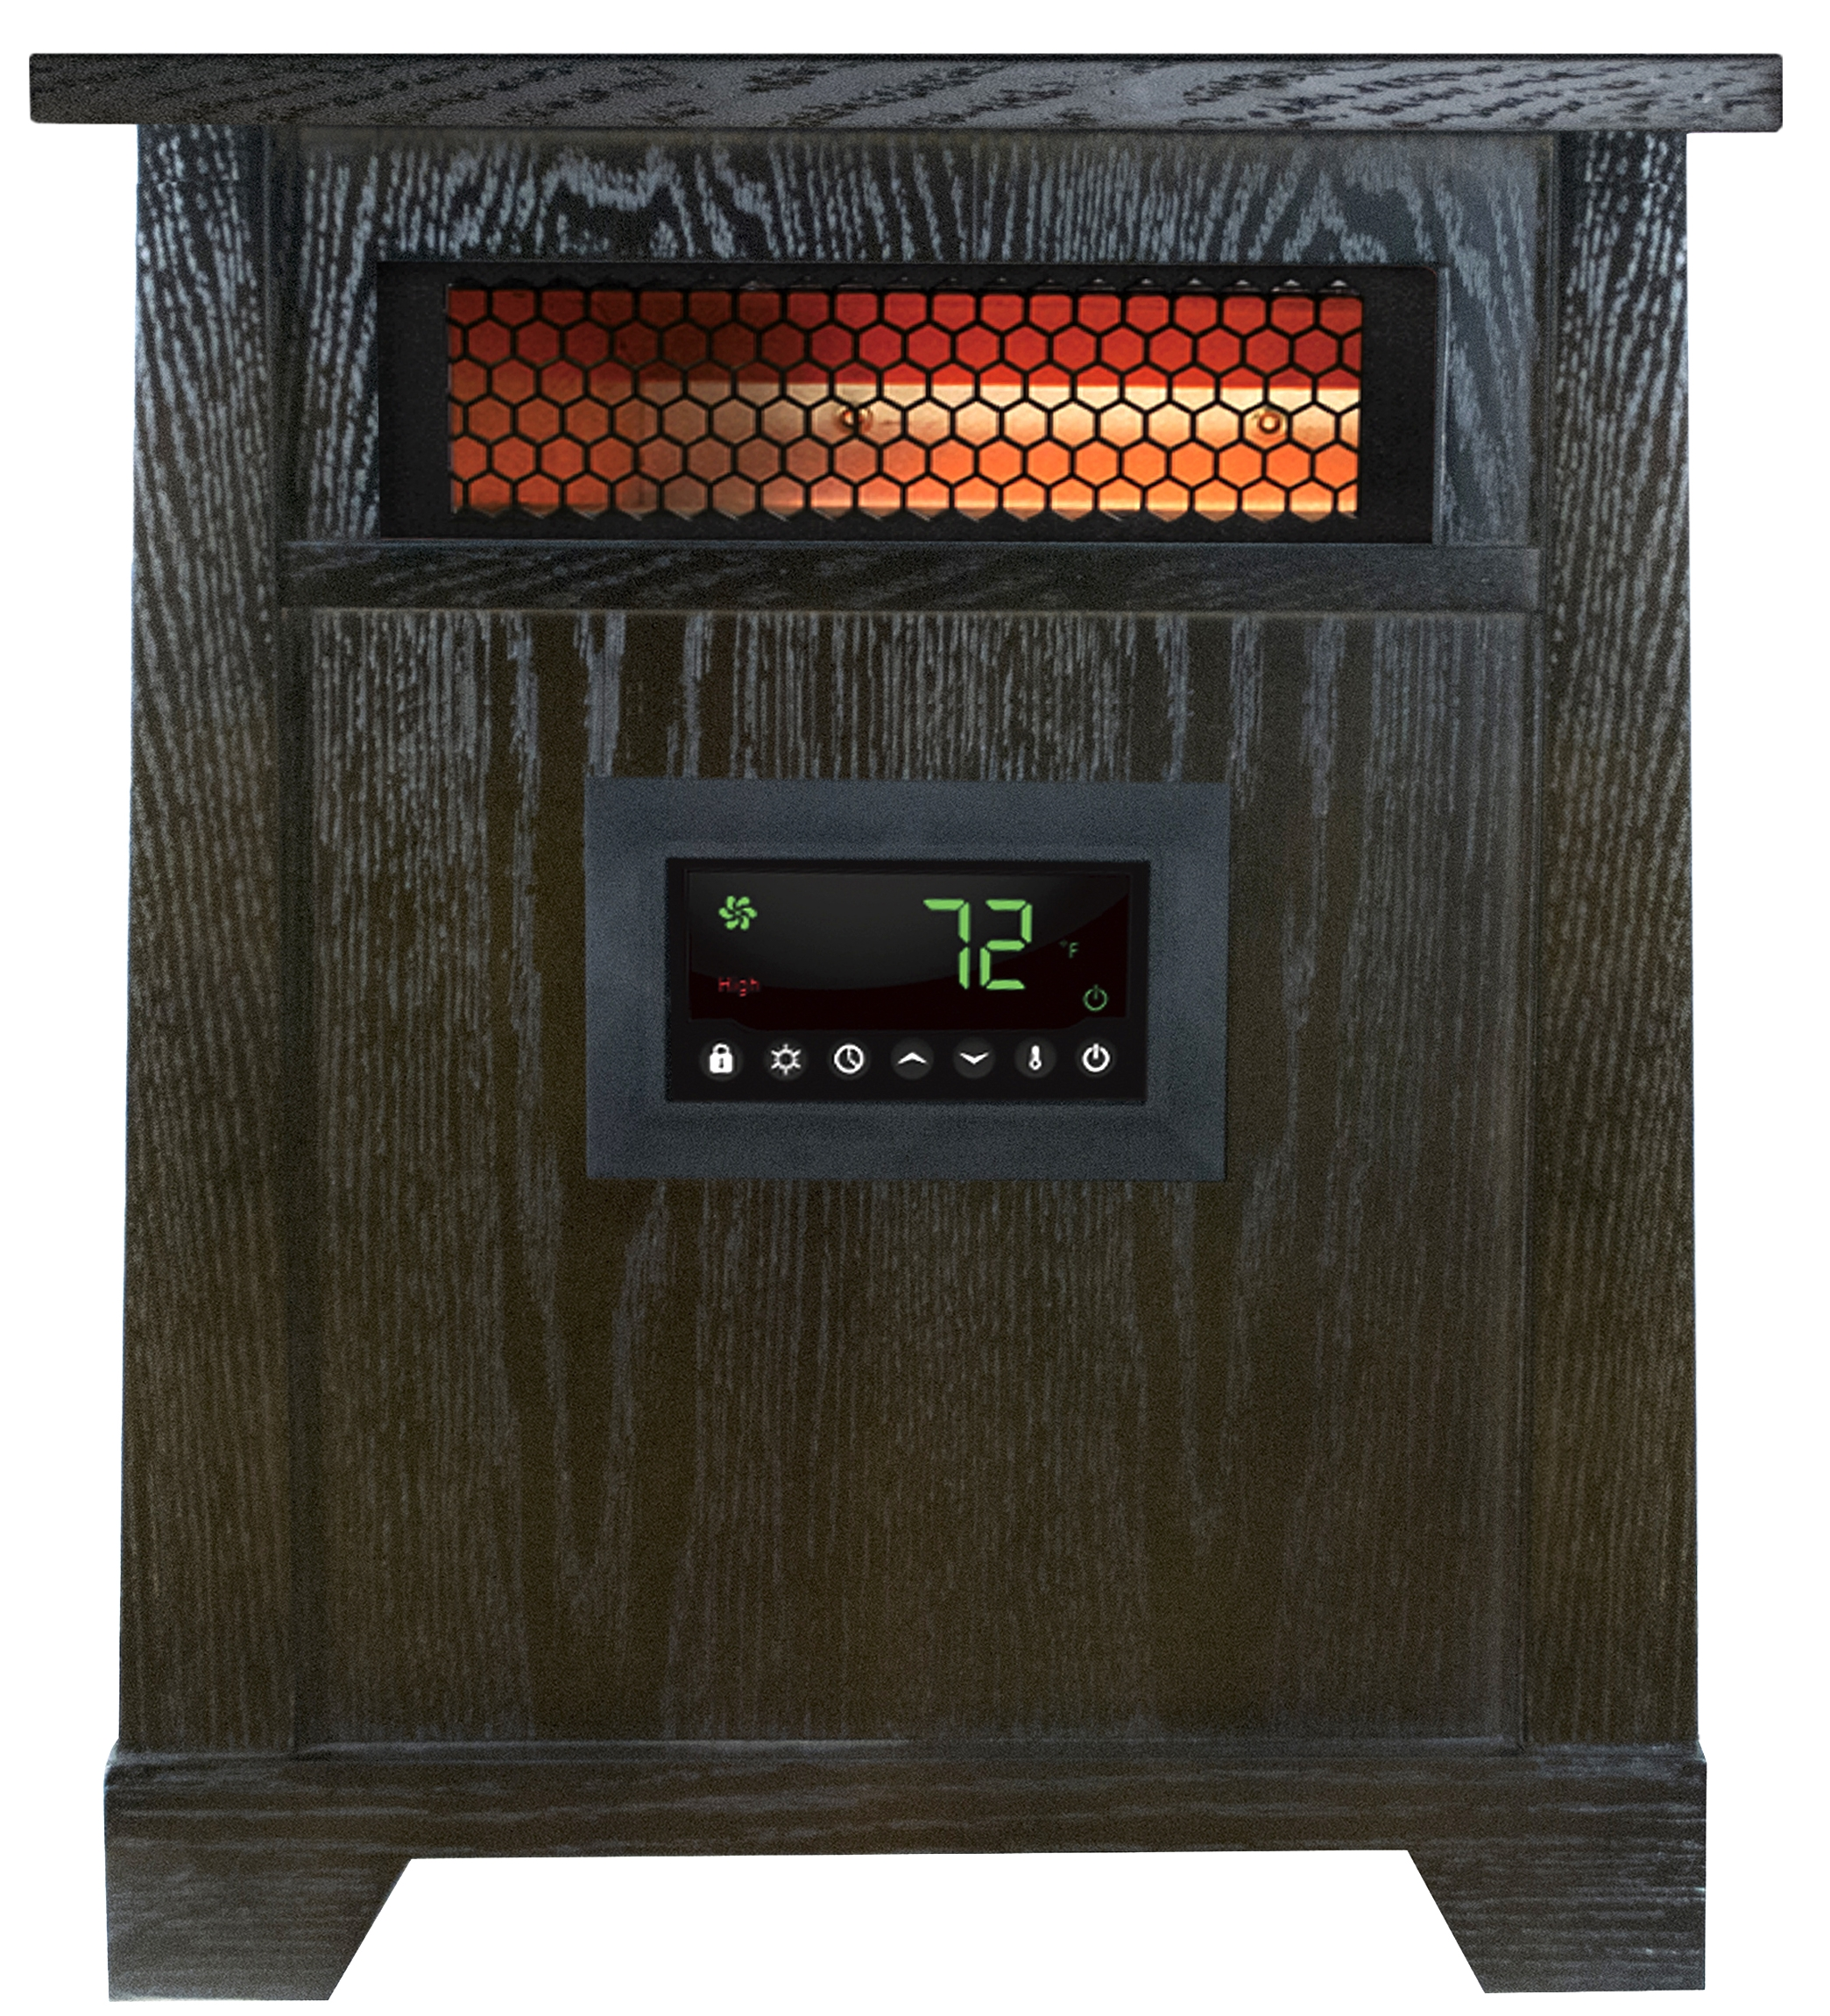 6 Element Infrared Heater with Wood Cabinet Lifetime Air Filter and Remote